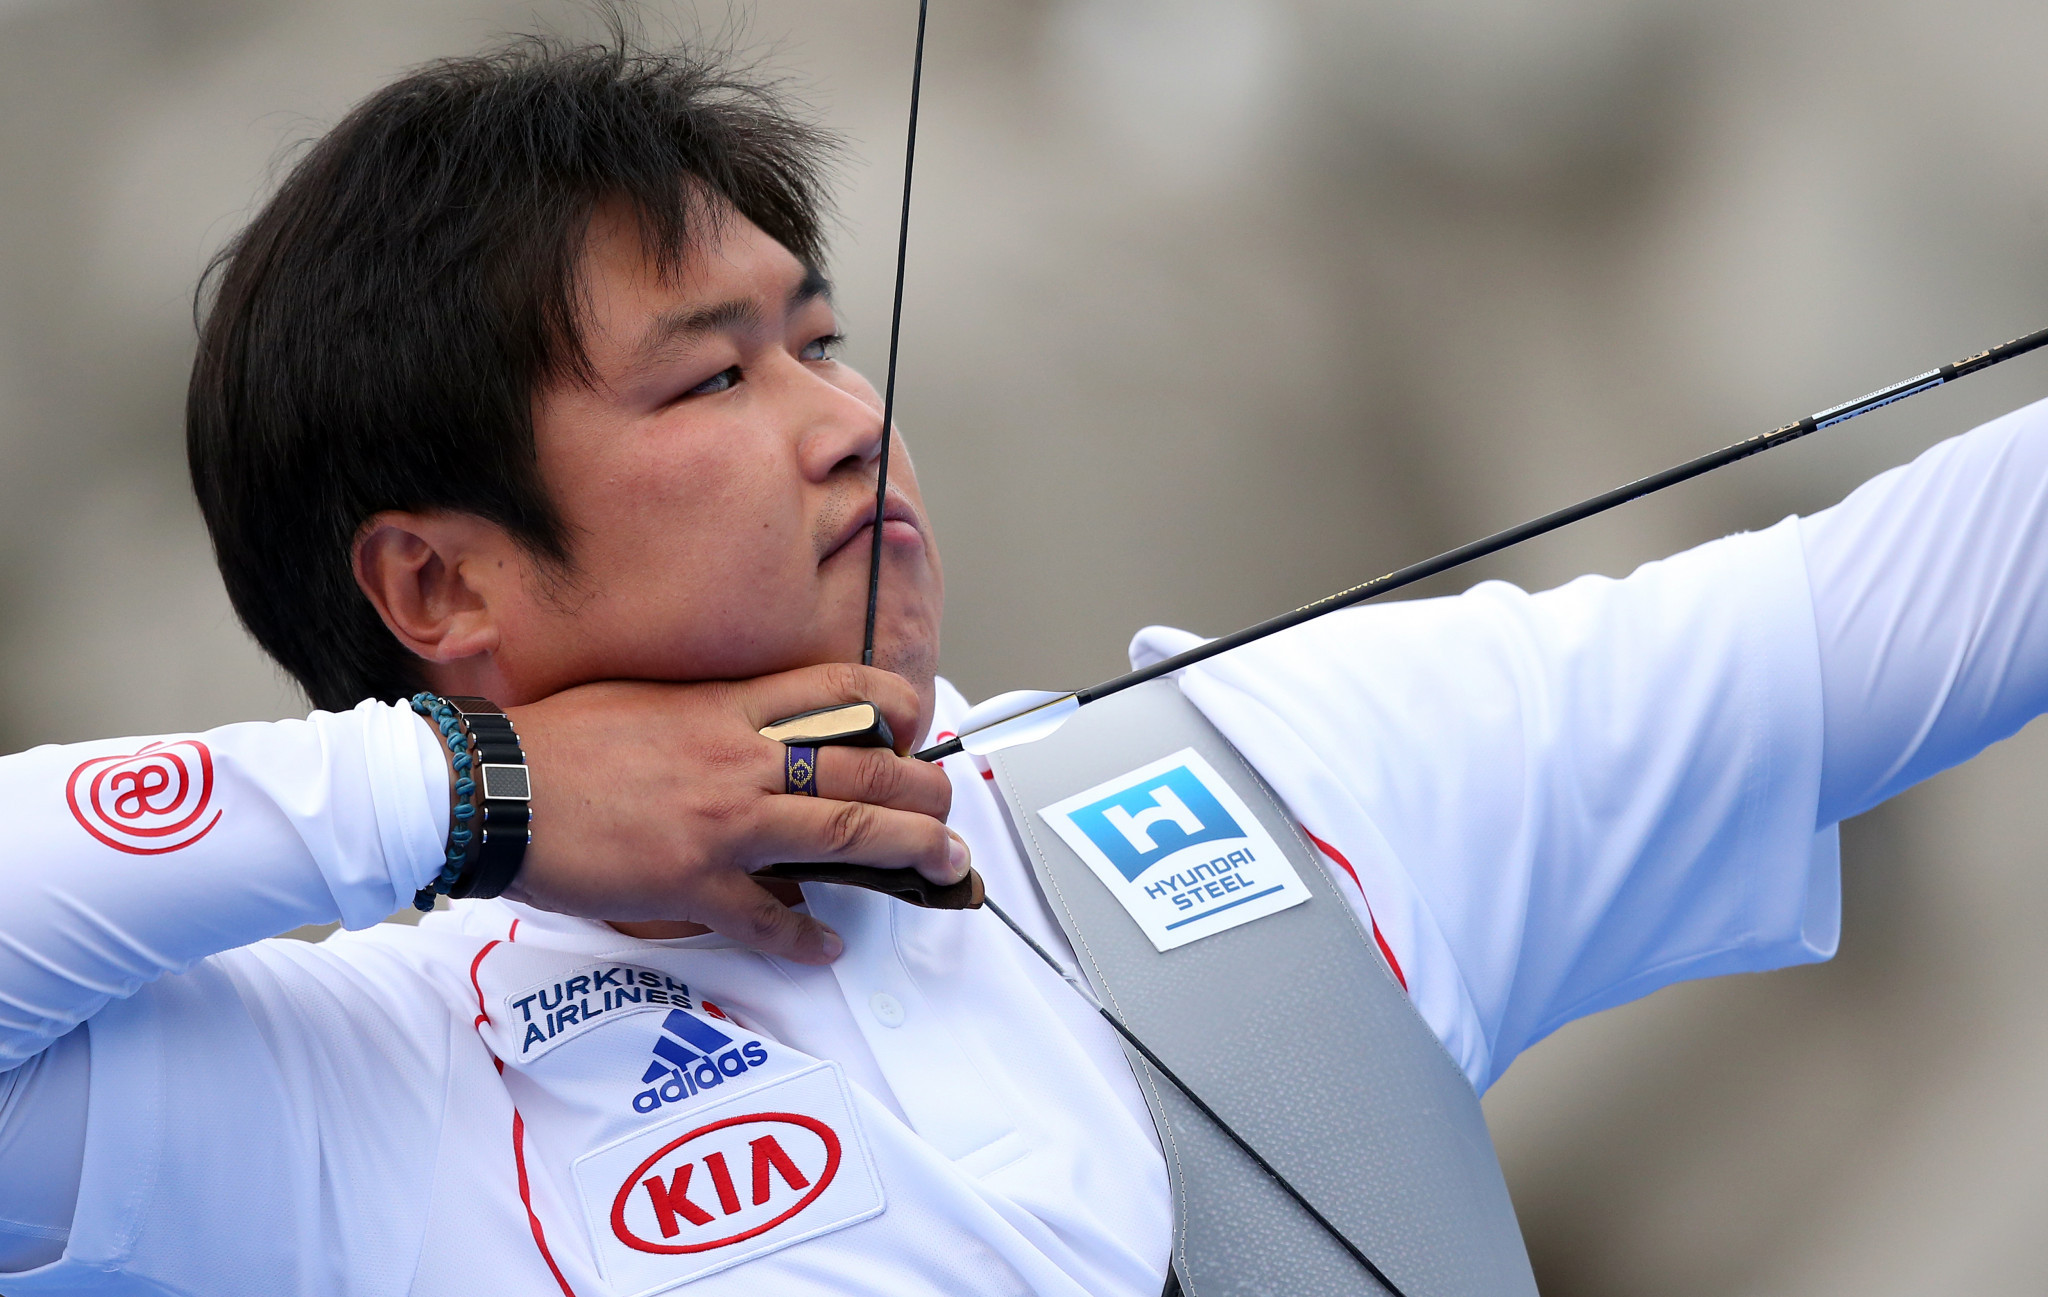 South Korean victories in recurve events at World Archery Indoor World Series in Macau